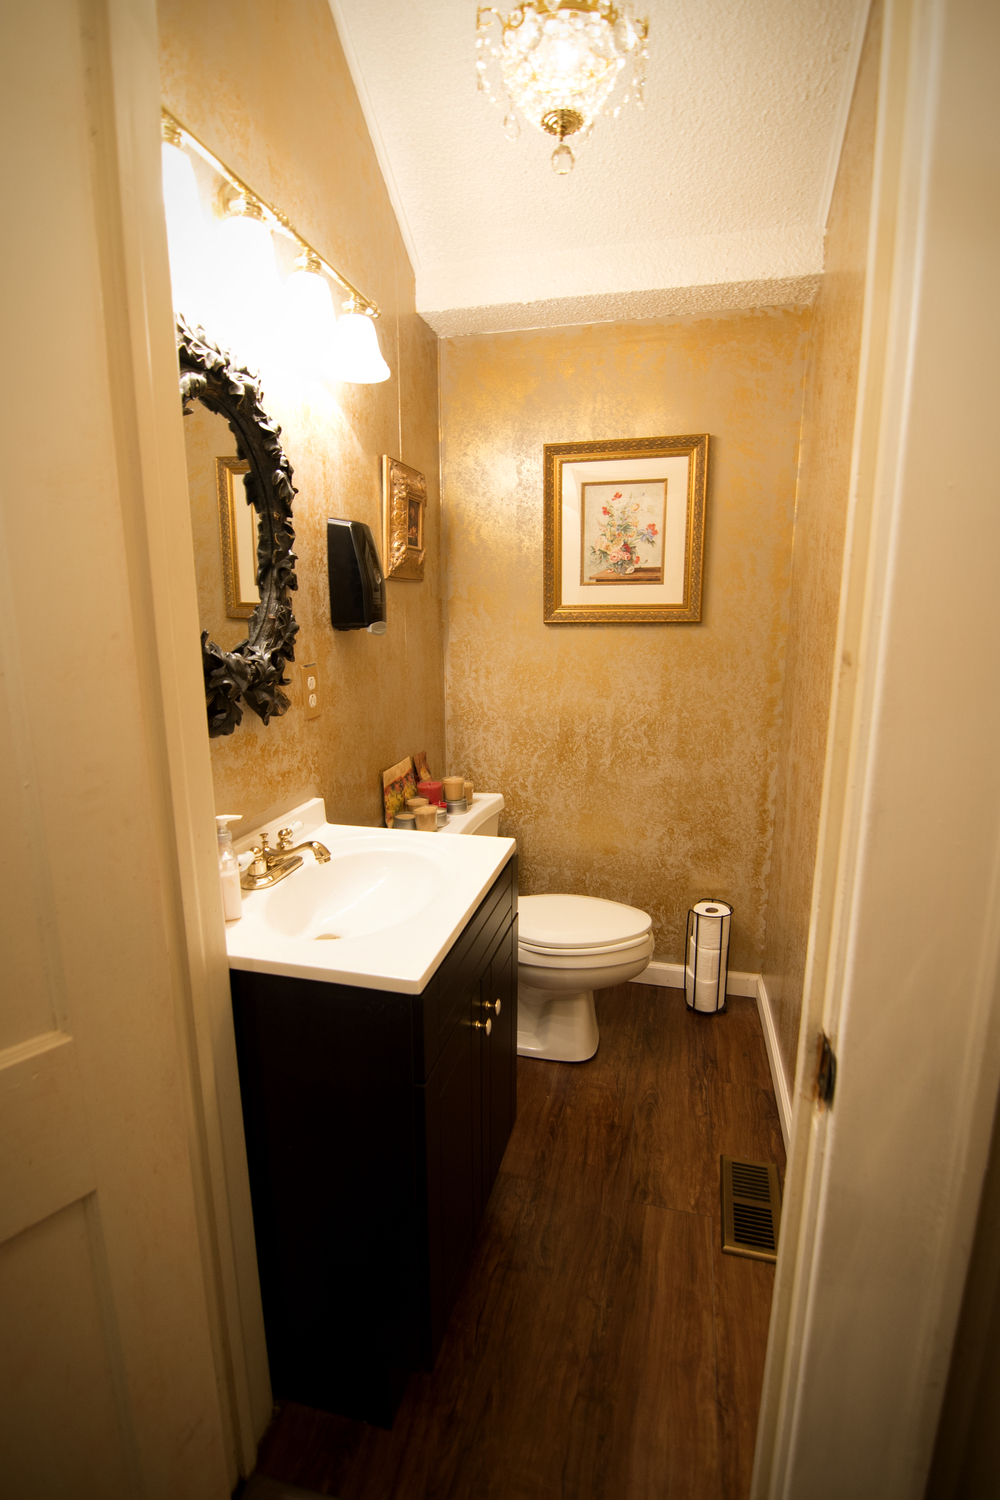 Our space is outfitted with two separate bathrooms for guests